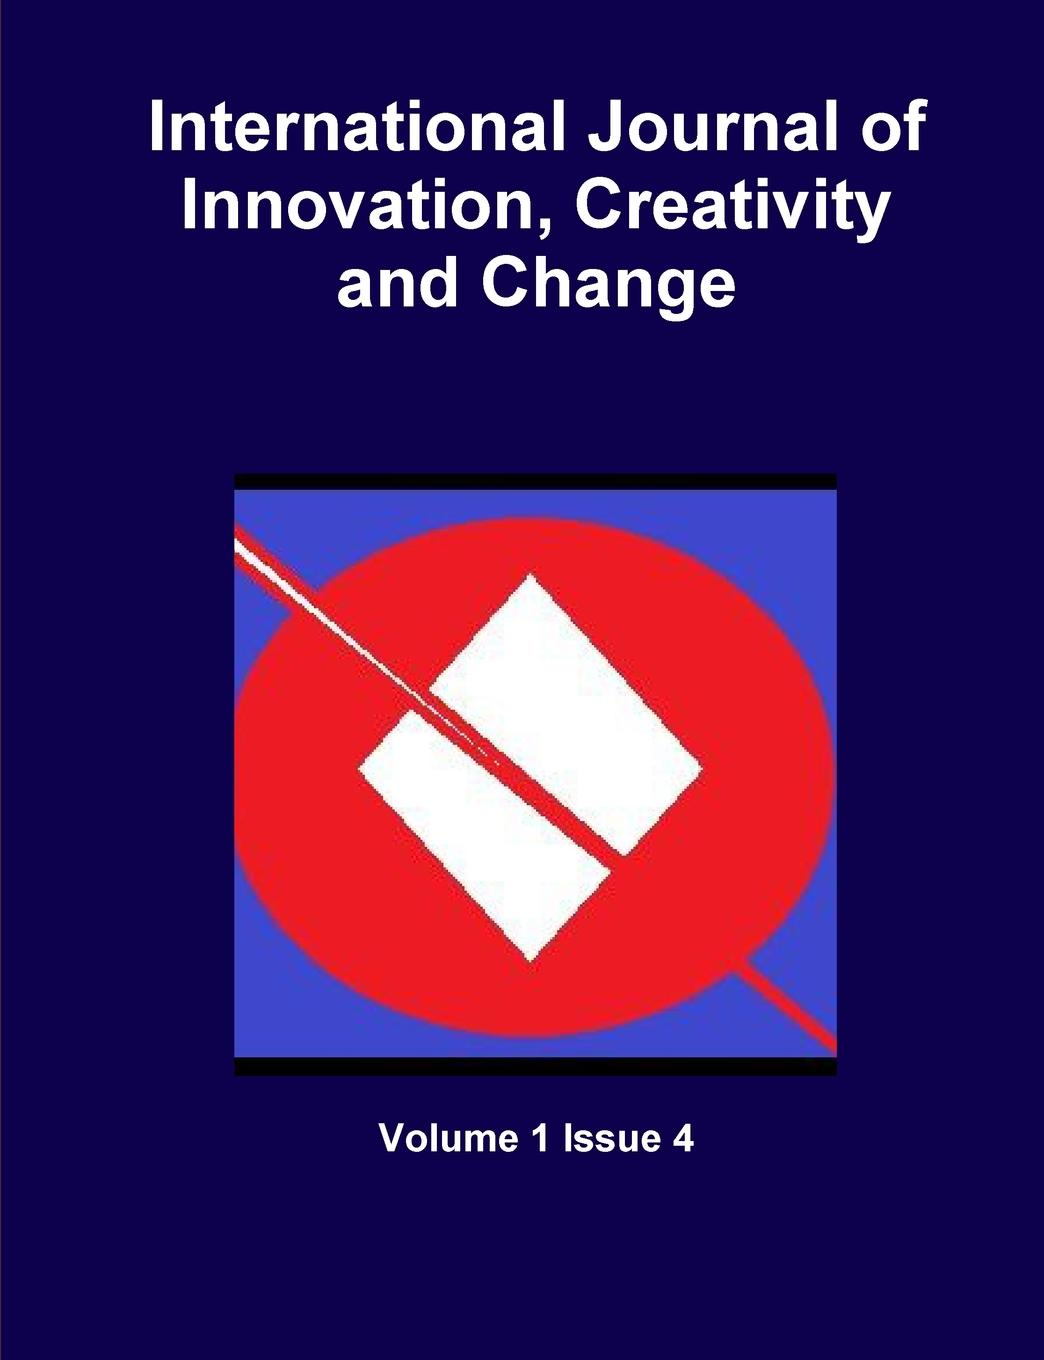 Volume 1 Issue 4 International Journal of Innovation, Creativity and Change knowledge and innovation dilemmas